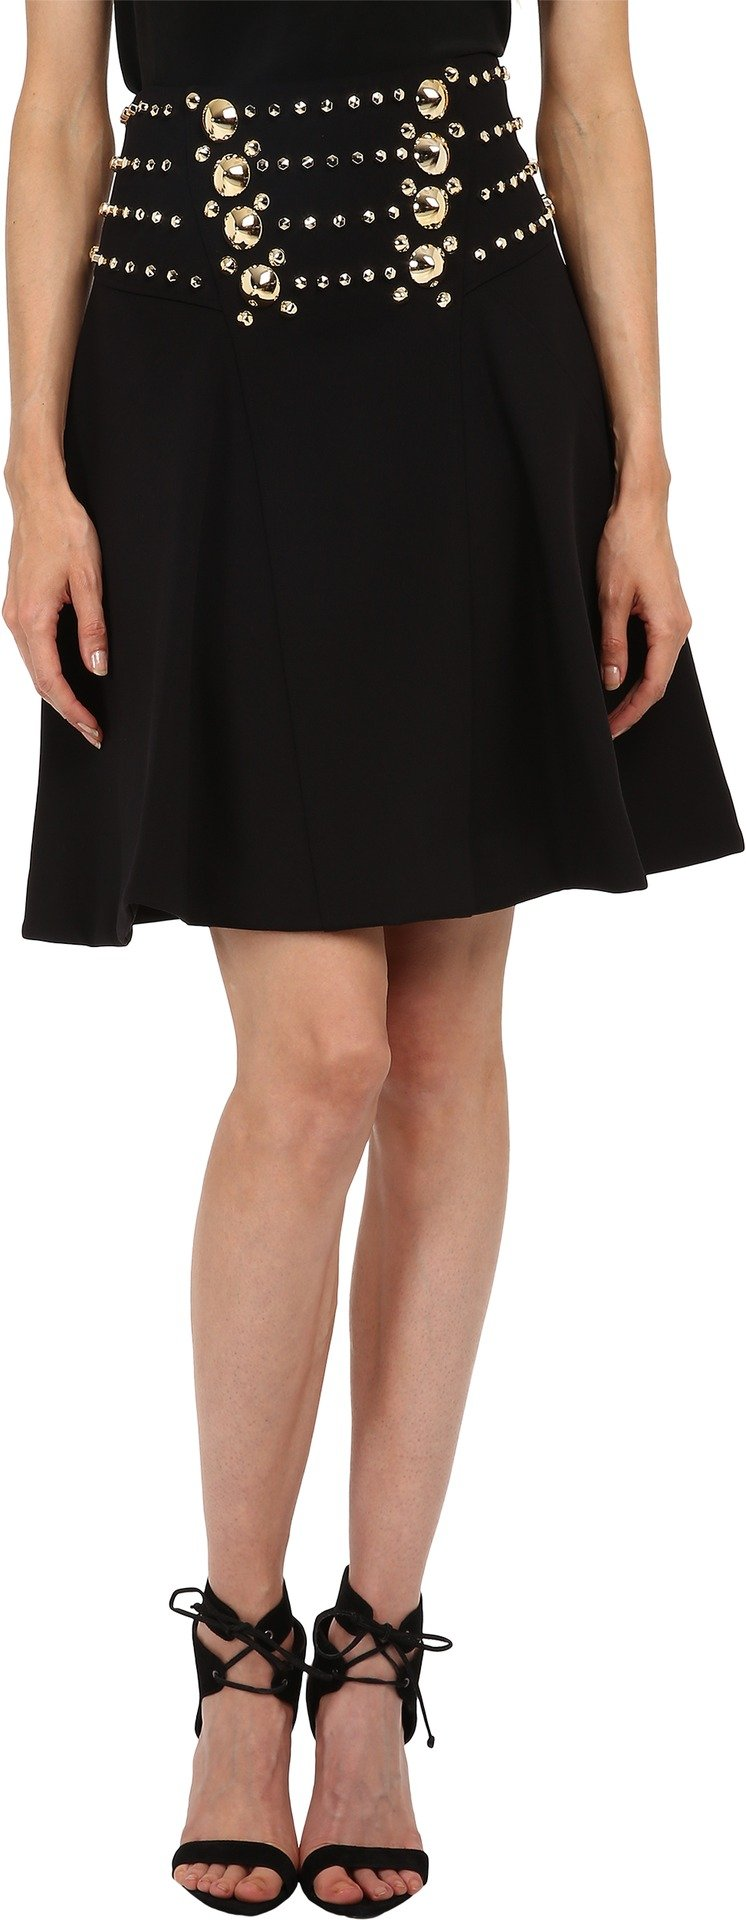 Versace Collection Women's Embellished Skirt Nero 48 (US 12)